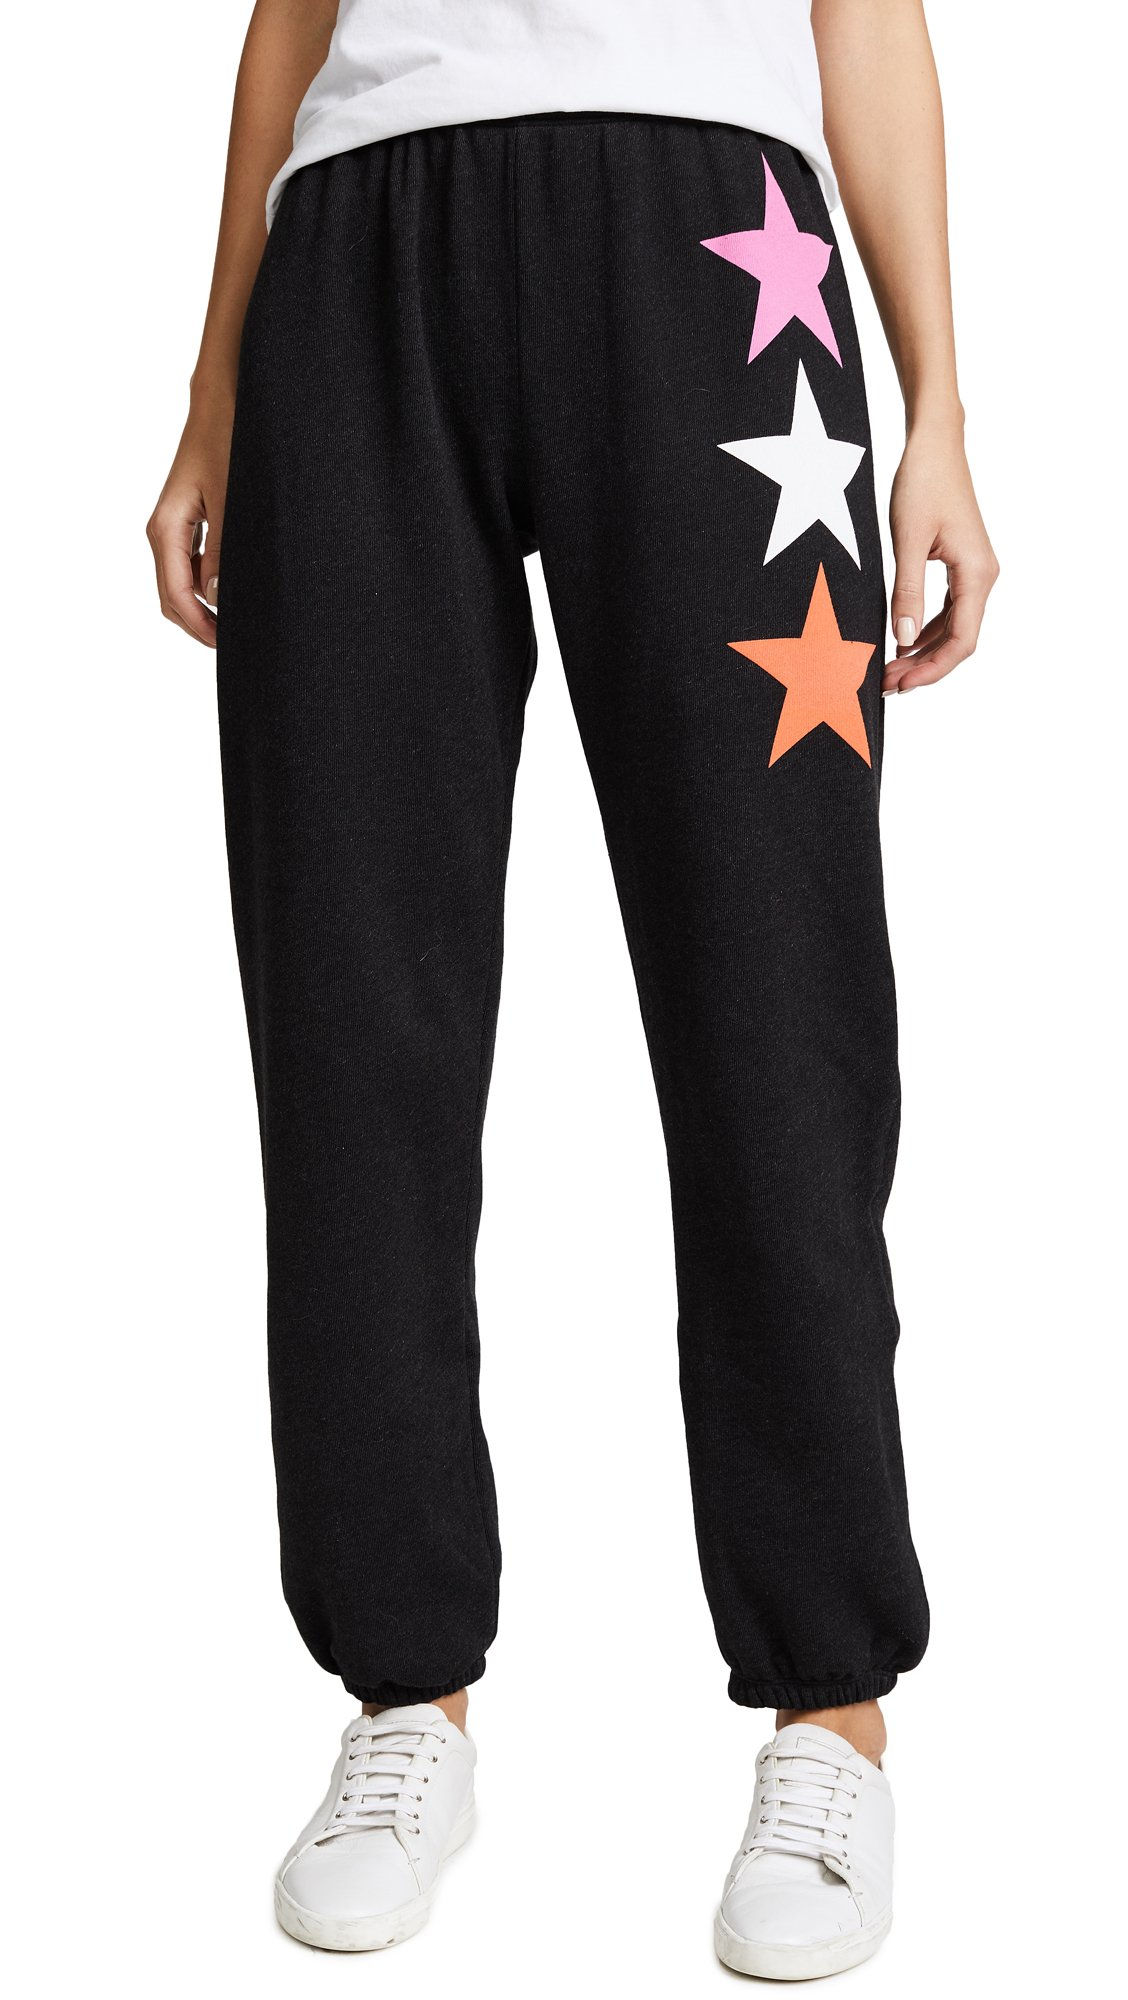 Wildfox Women's Arcade Star Easy Sweatpants, Heathered Black, Small